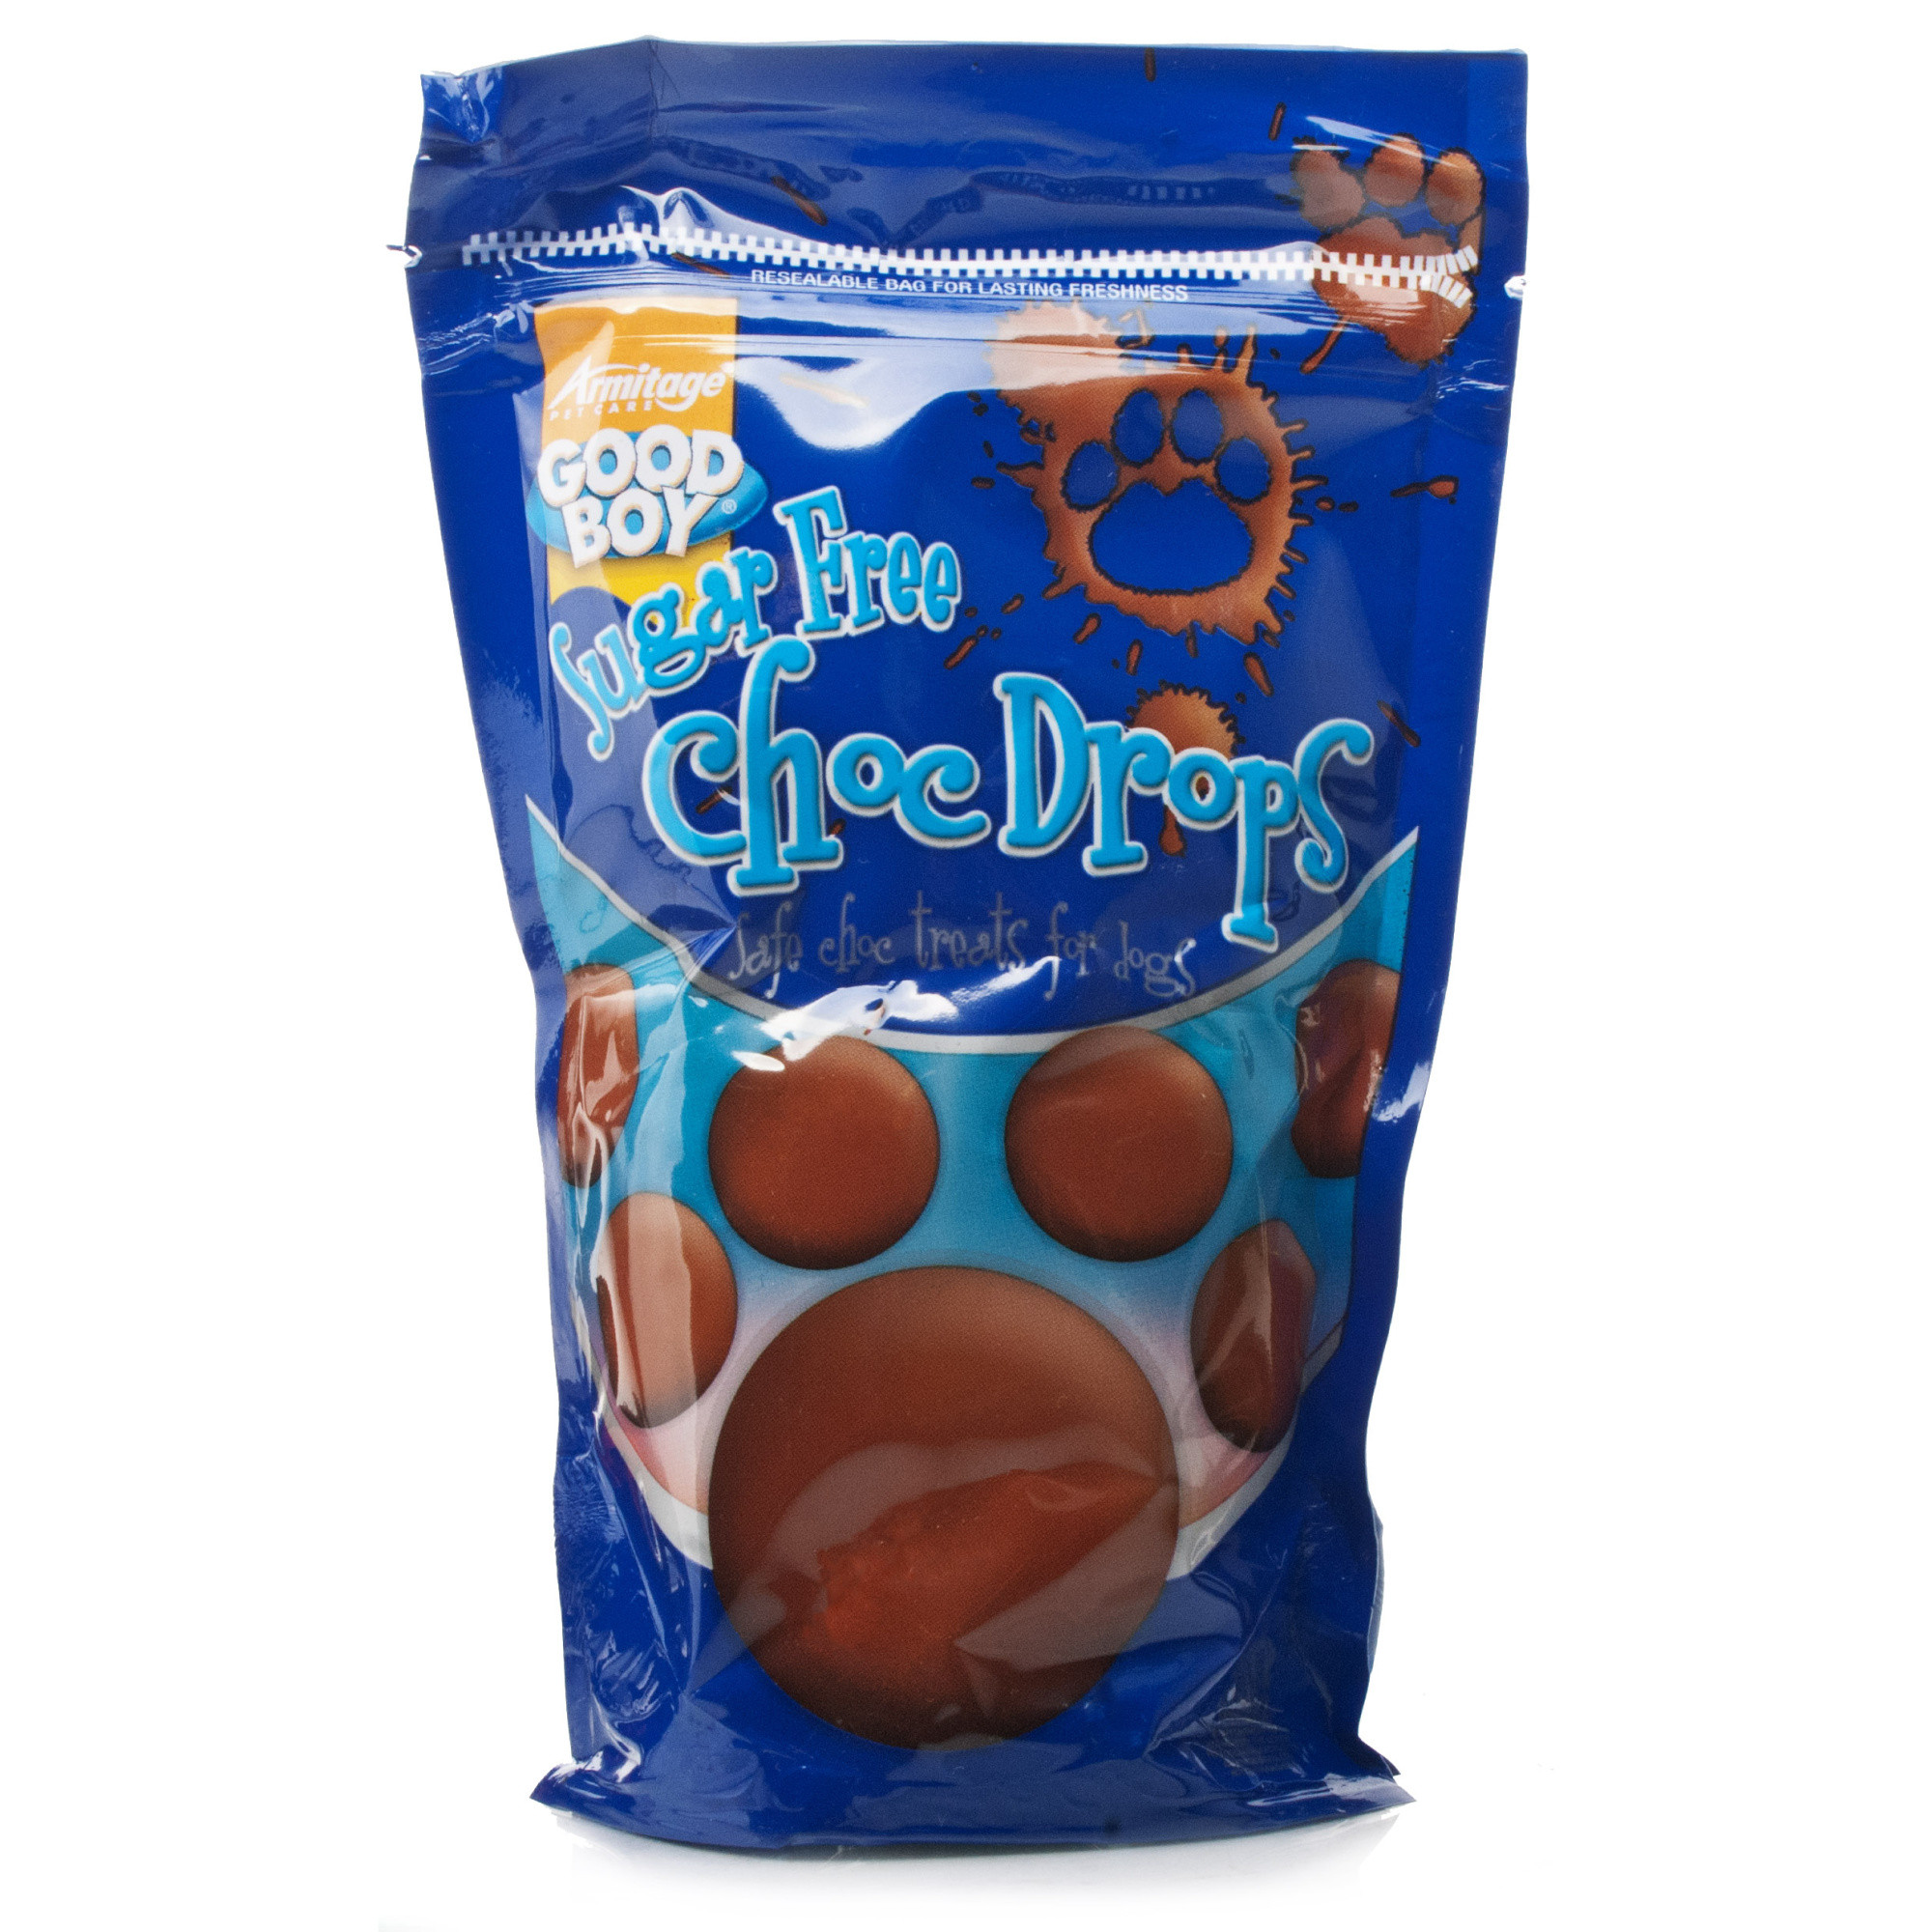 Good Boy Sugar Free Choc Drops Pouch